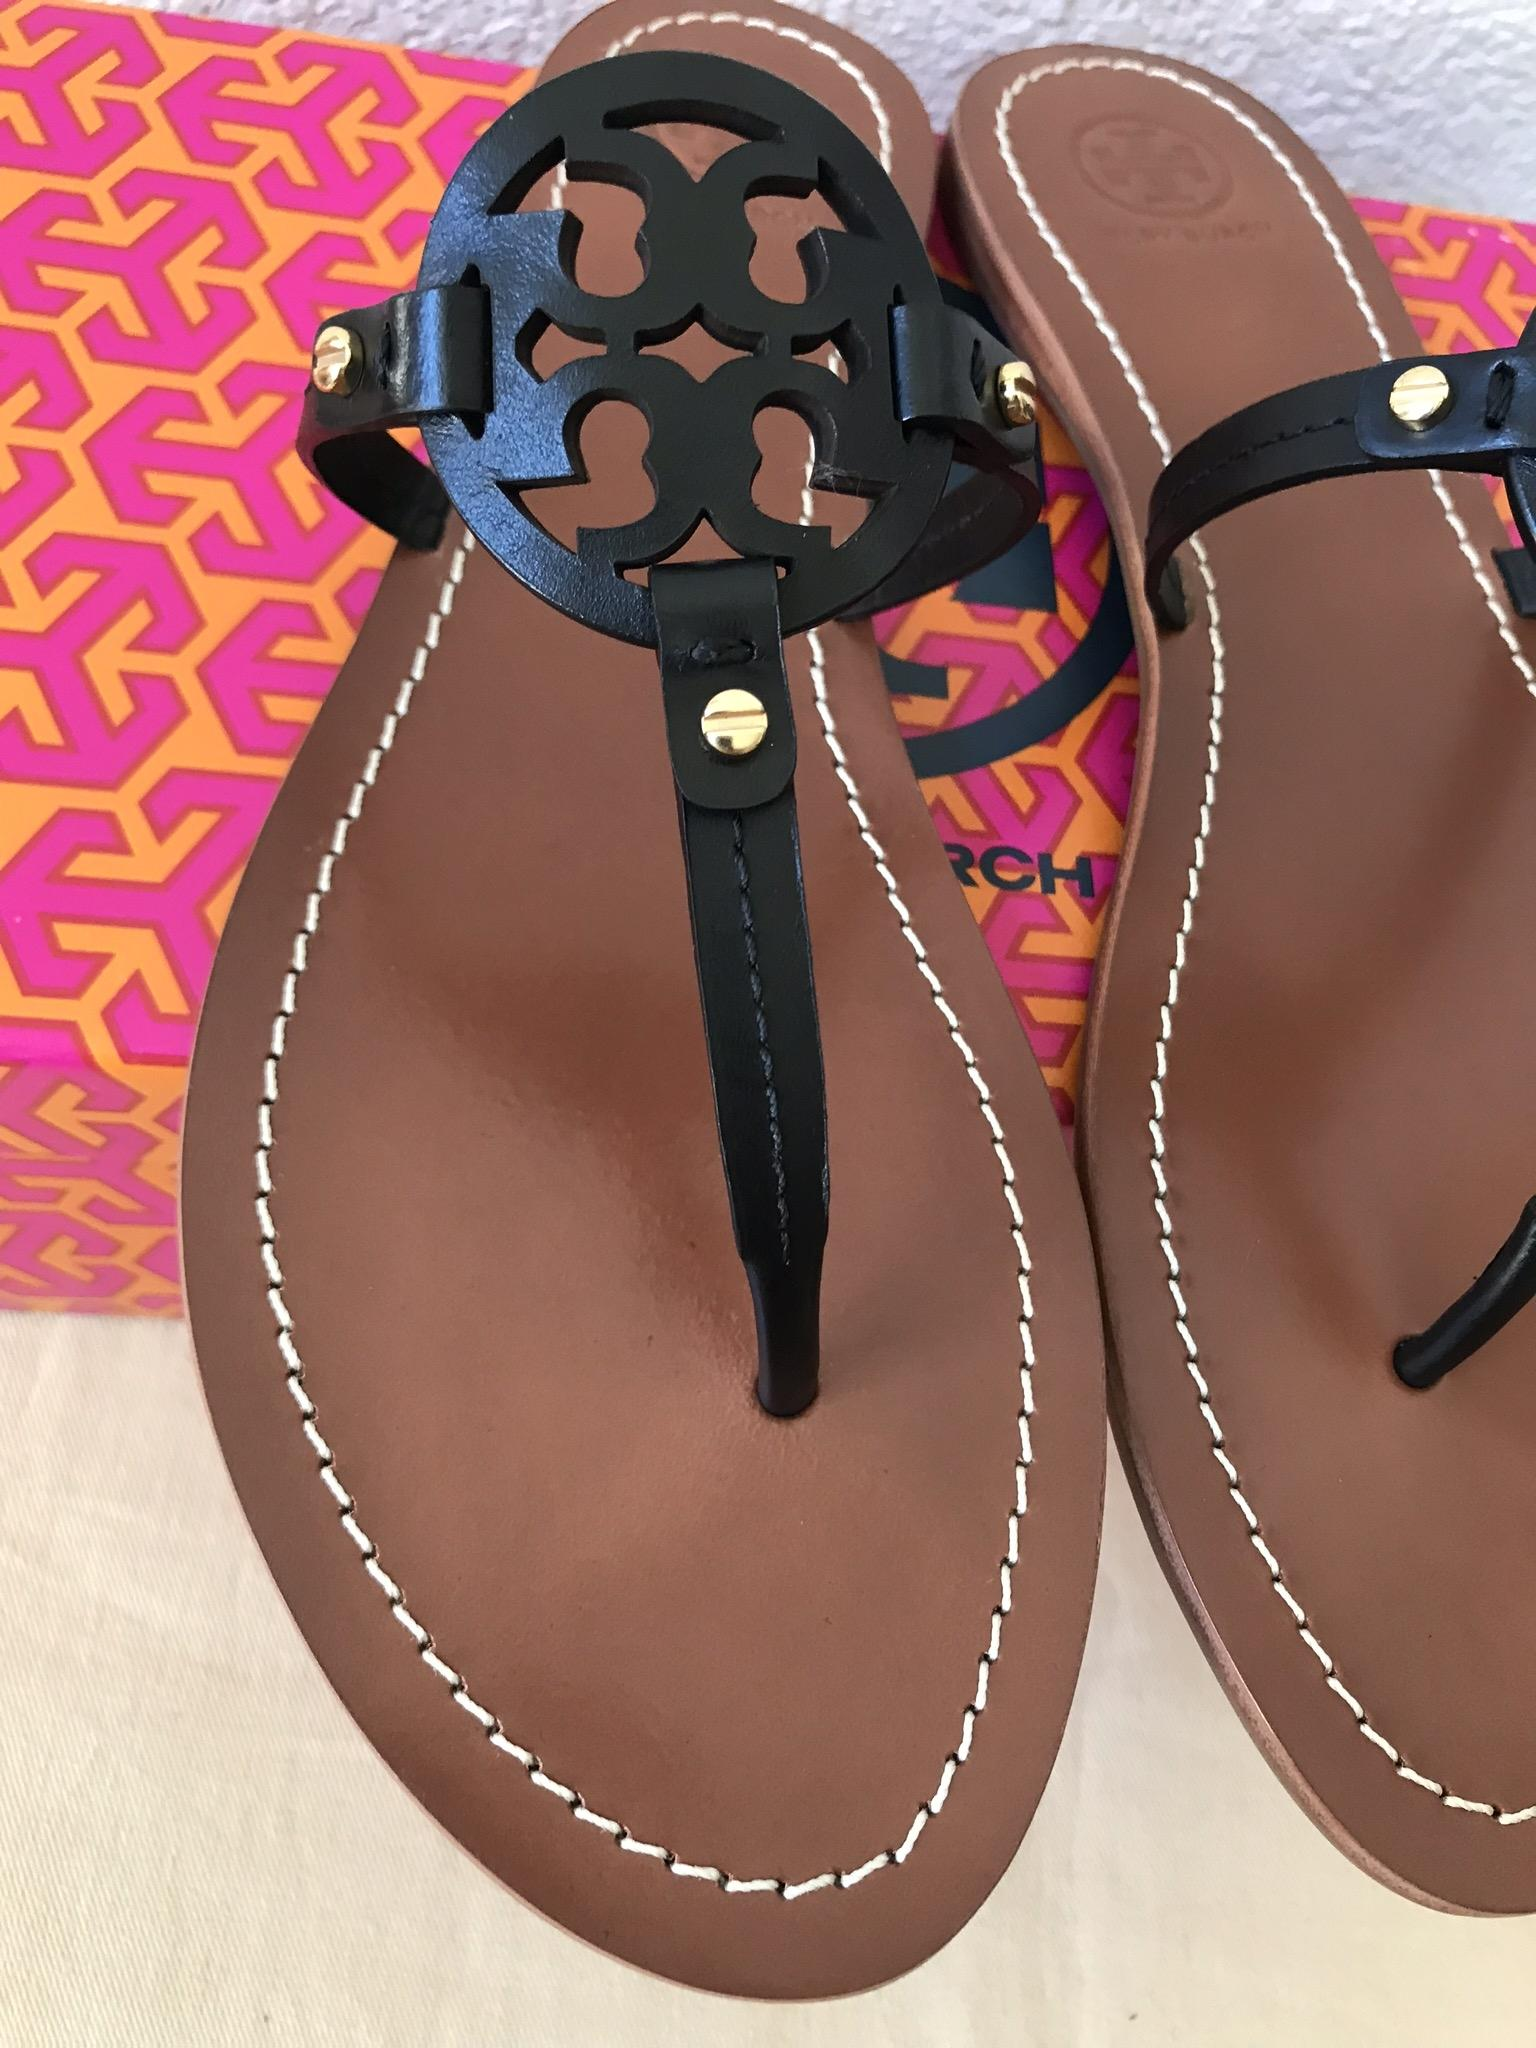 28b93f462 Tory Burch Black Mini Miller Flat Sandals Size US US US 8 Regular (M ...